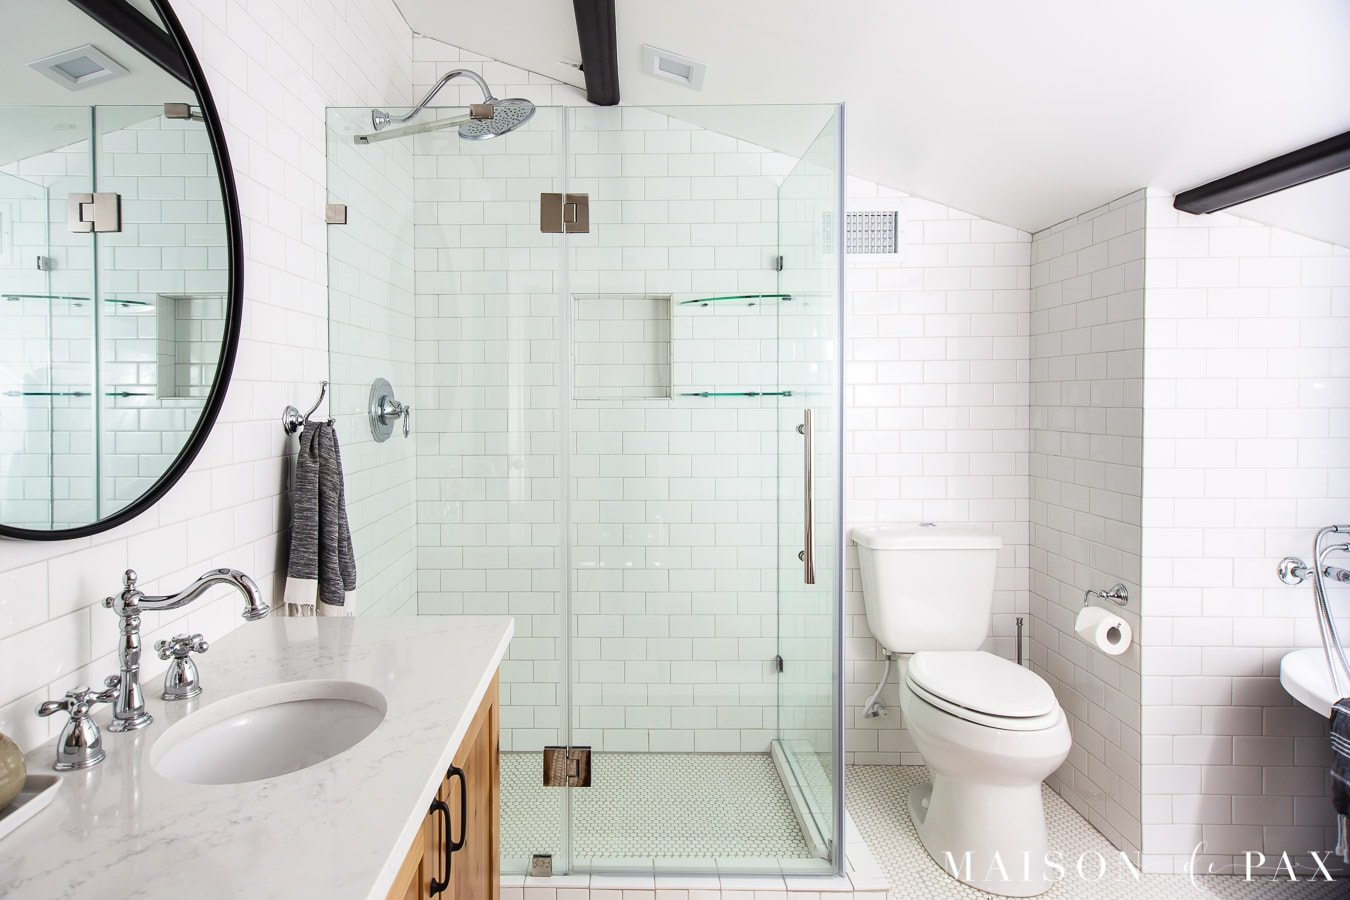 white subway tile walls with frameless shower enclosure | Maison de Pax